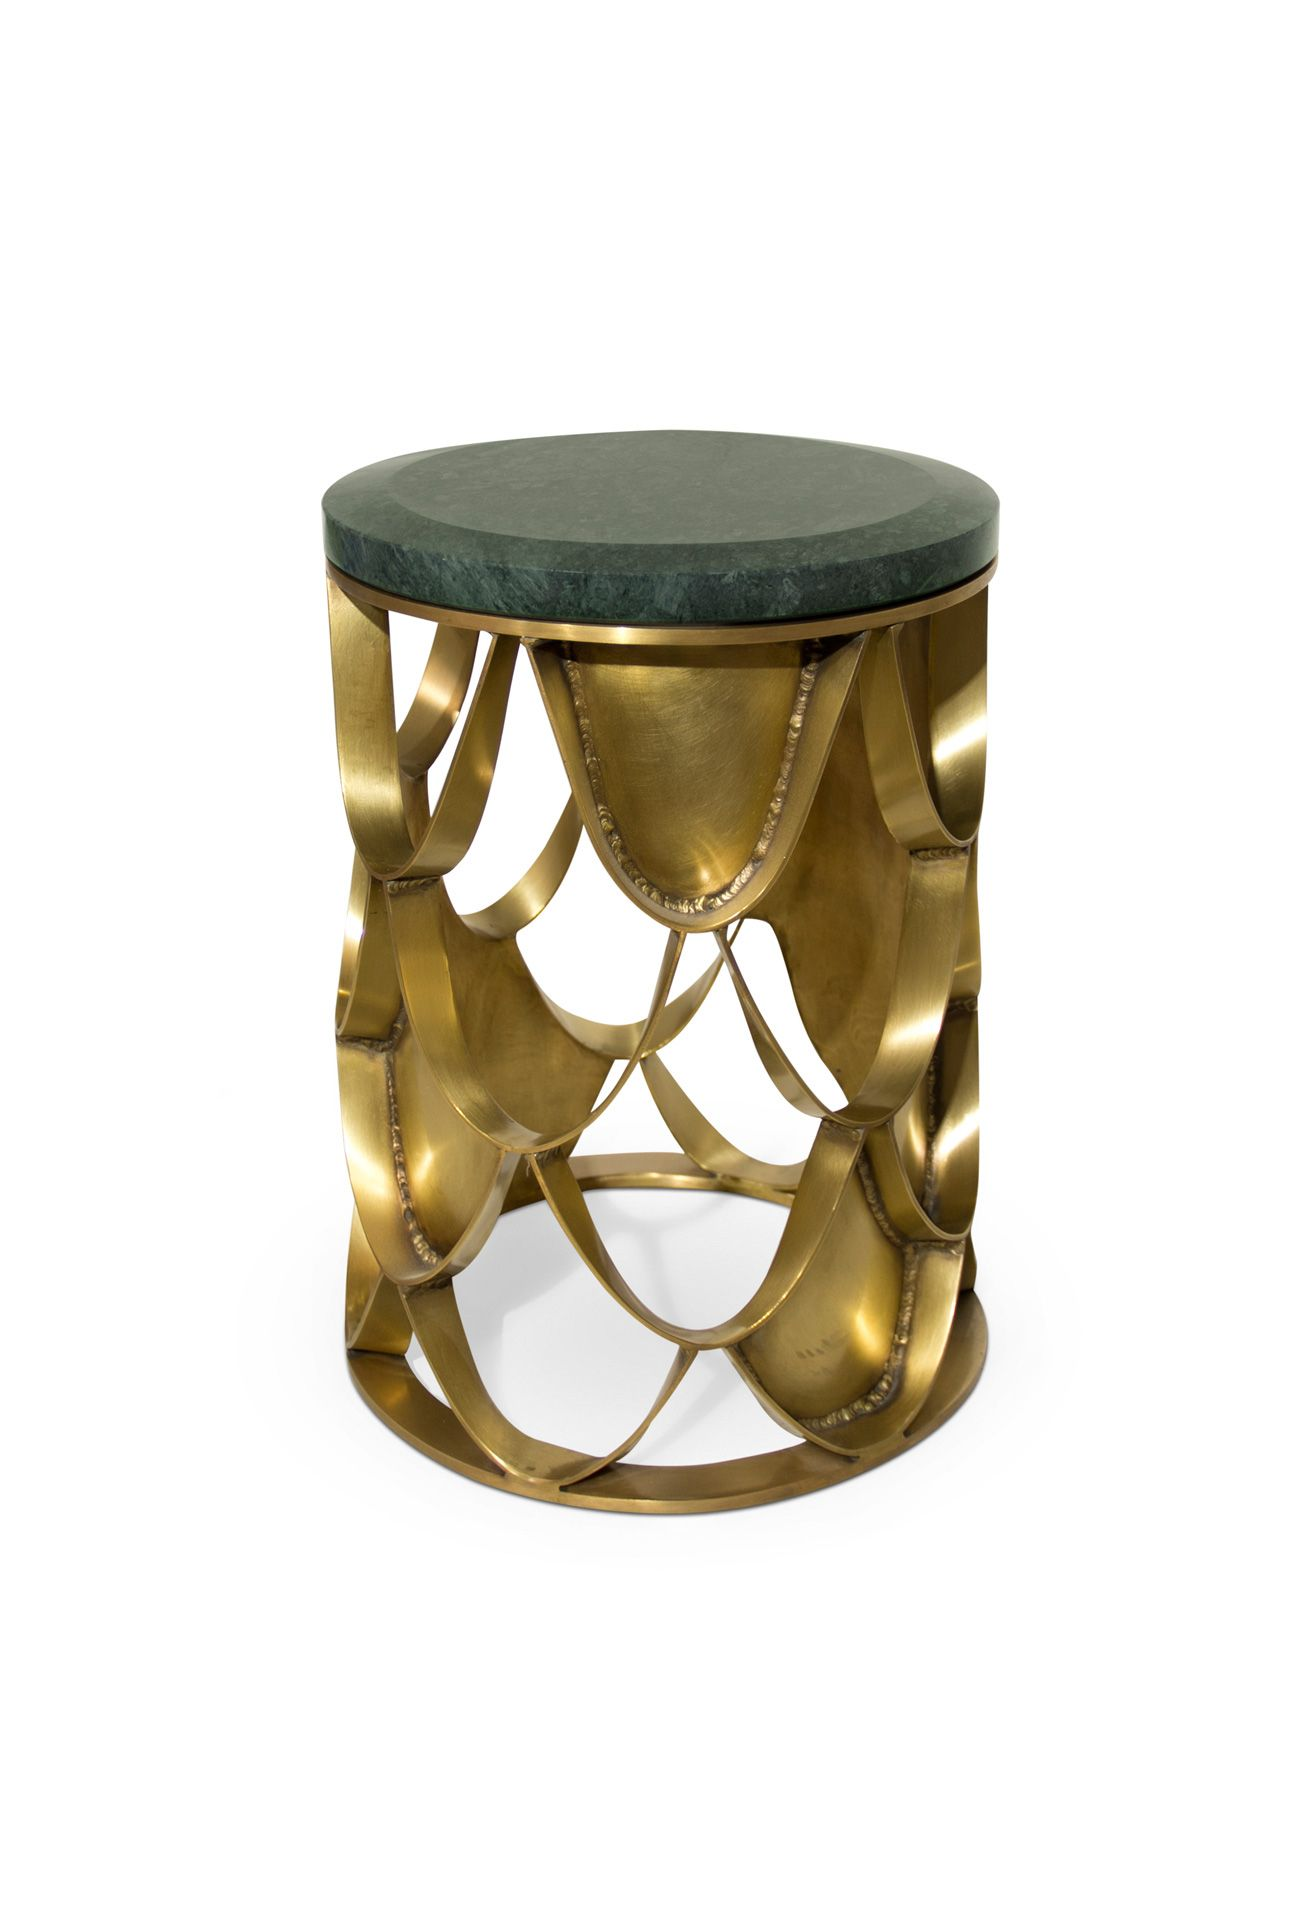 modern side table koi round and small with brushed bombay company marble top accent brass base green black outdoor wicker furniture sets clearance edmonton home decor furnishing